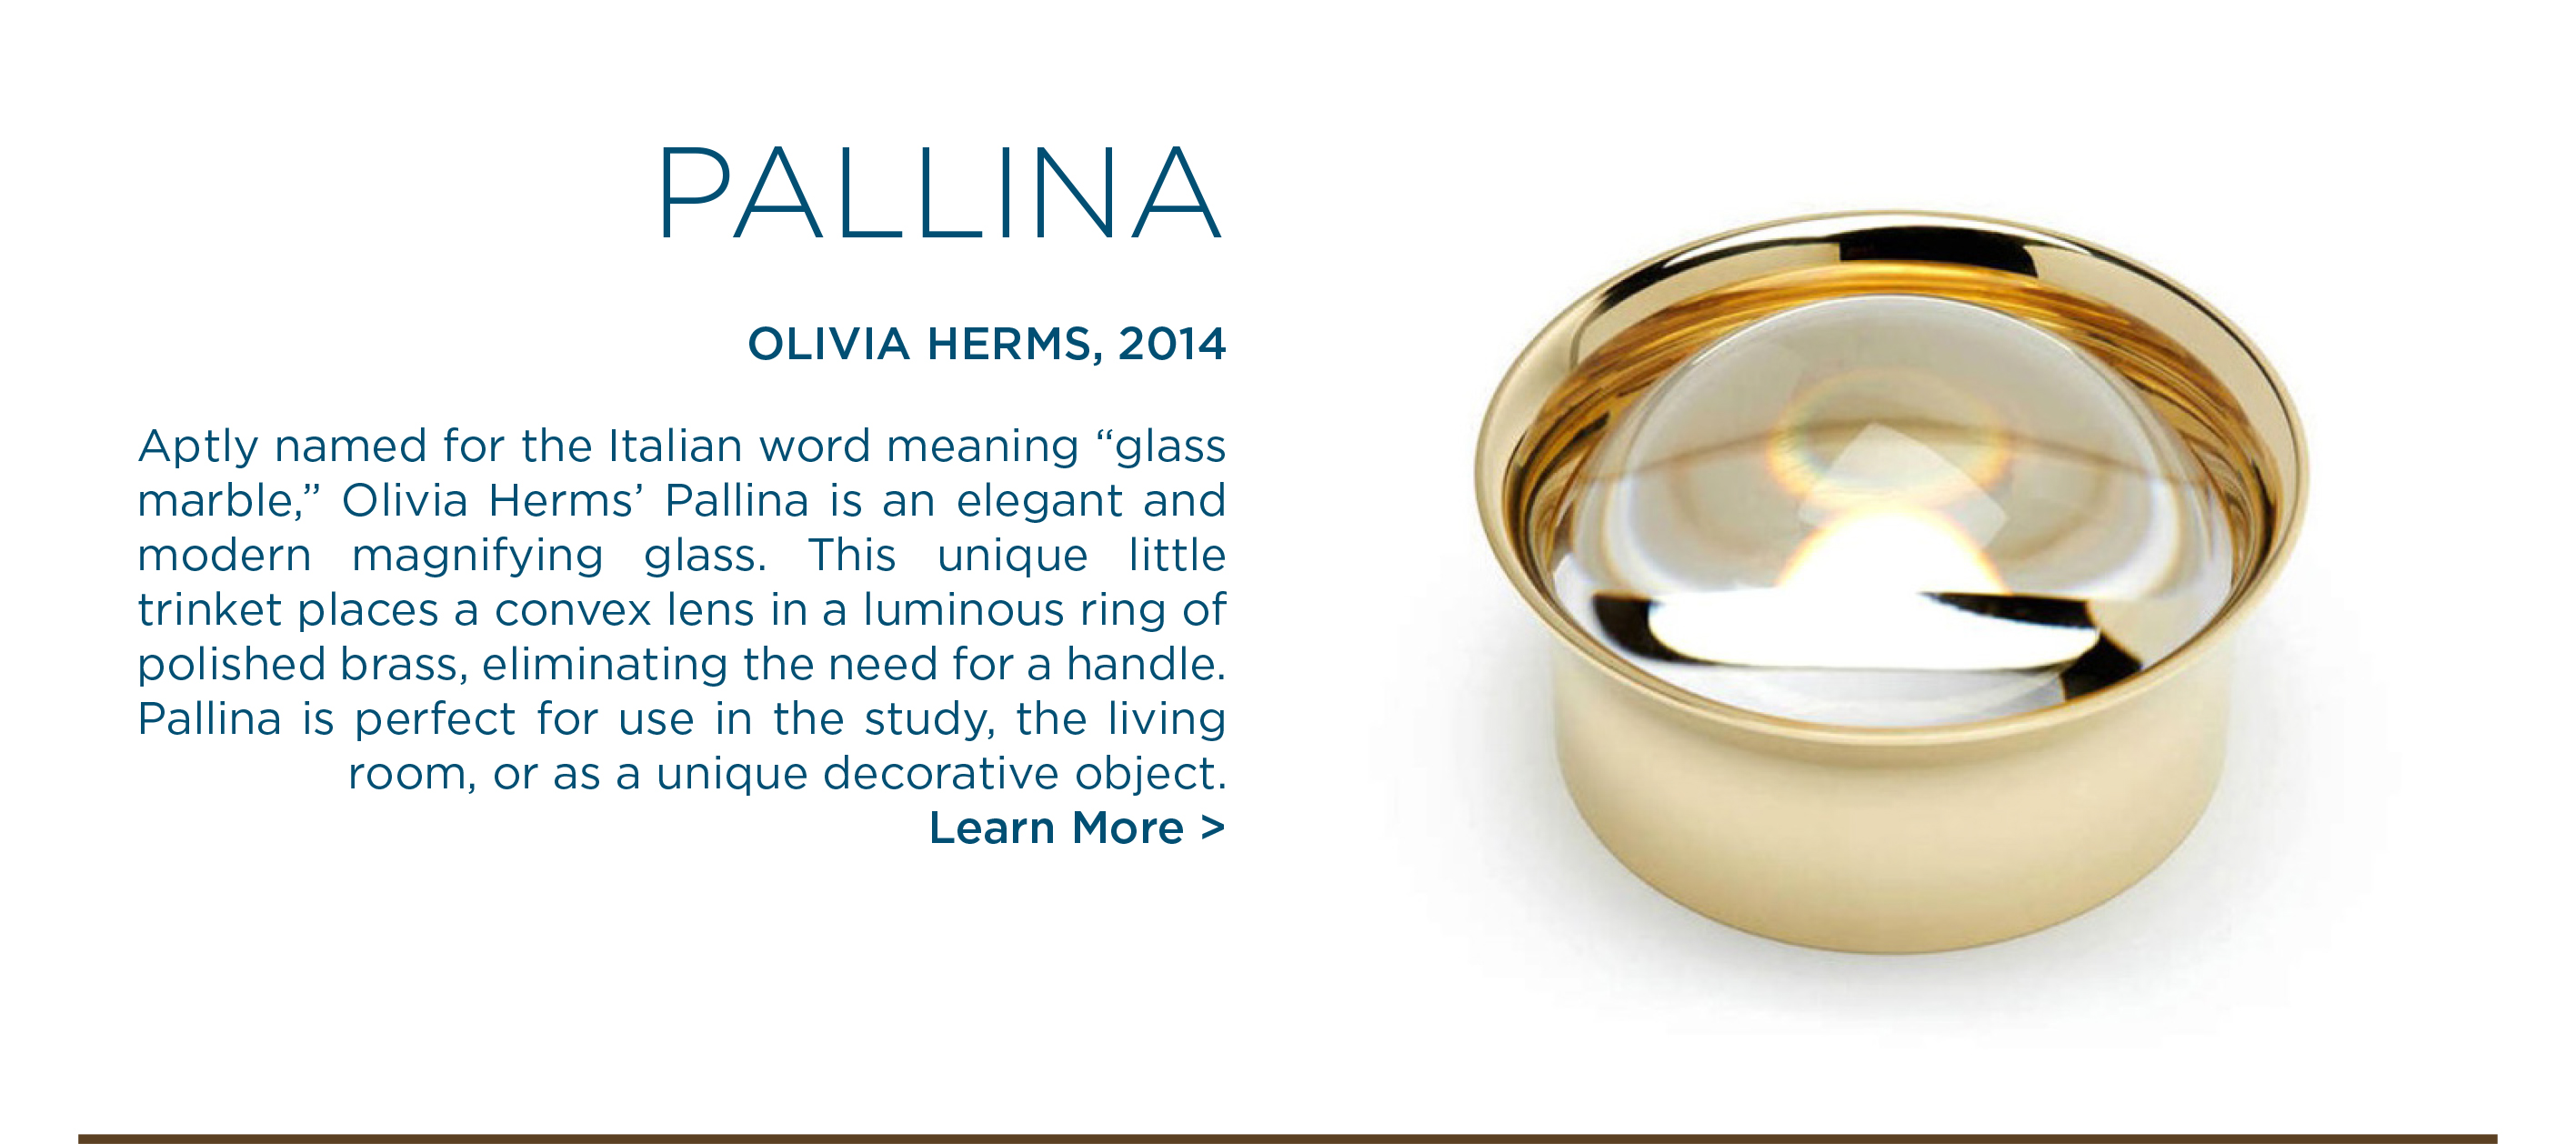 Pallina magnifying glass olivia herms skultuna suite ny